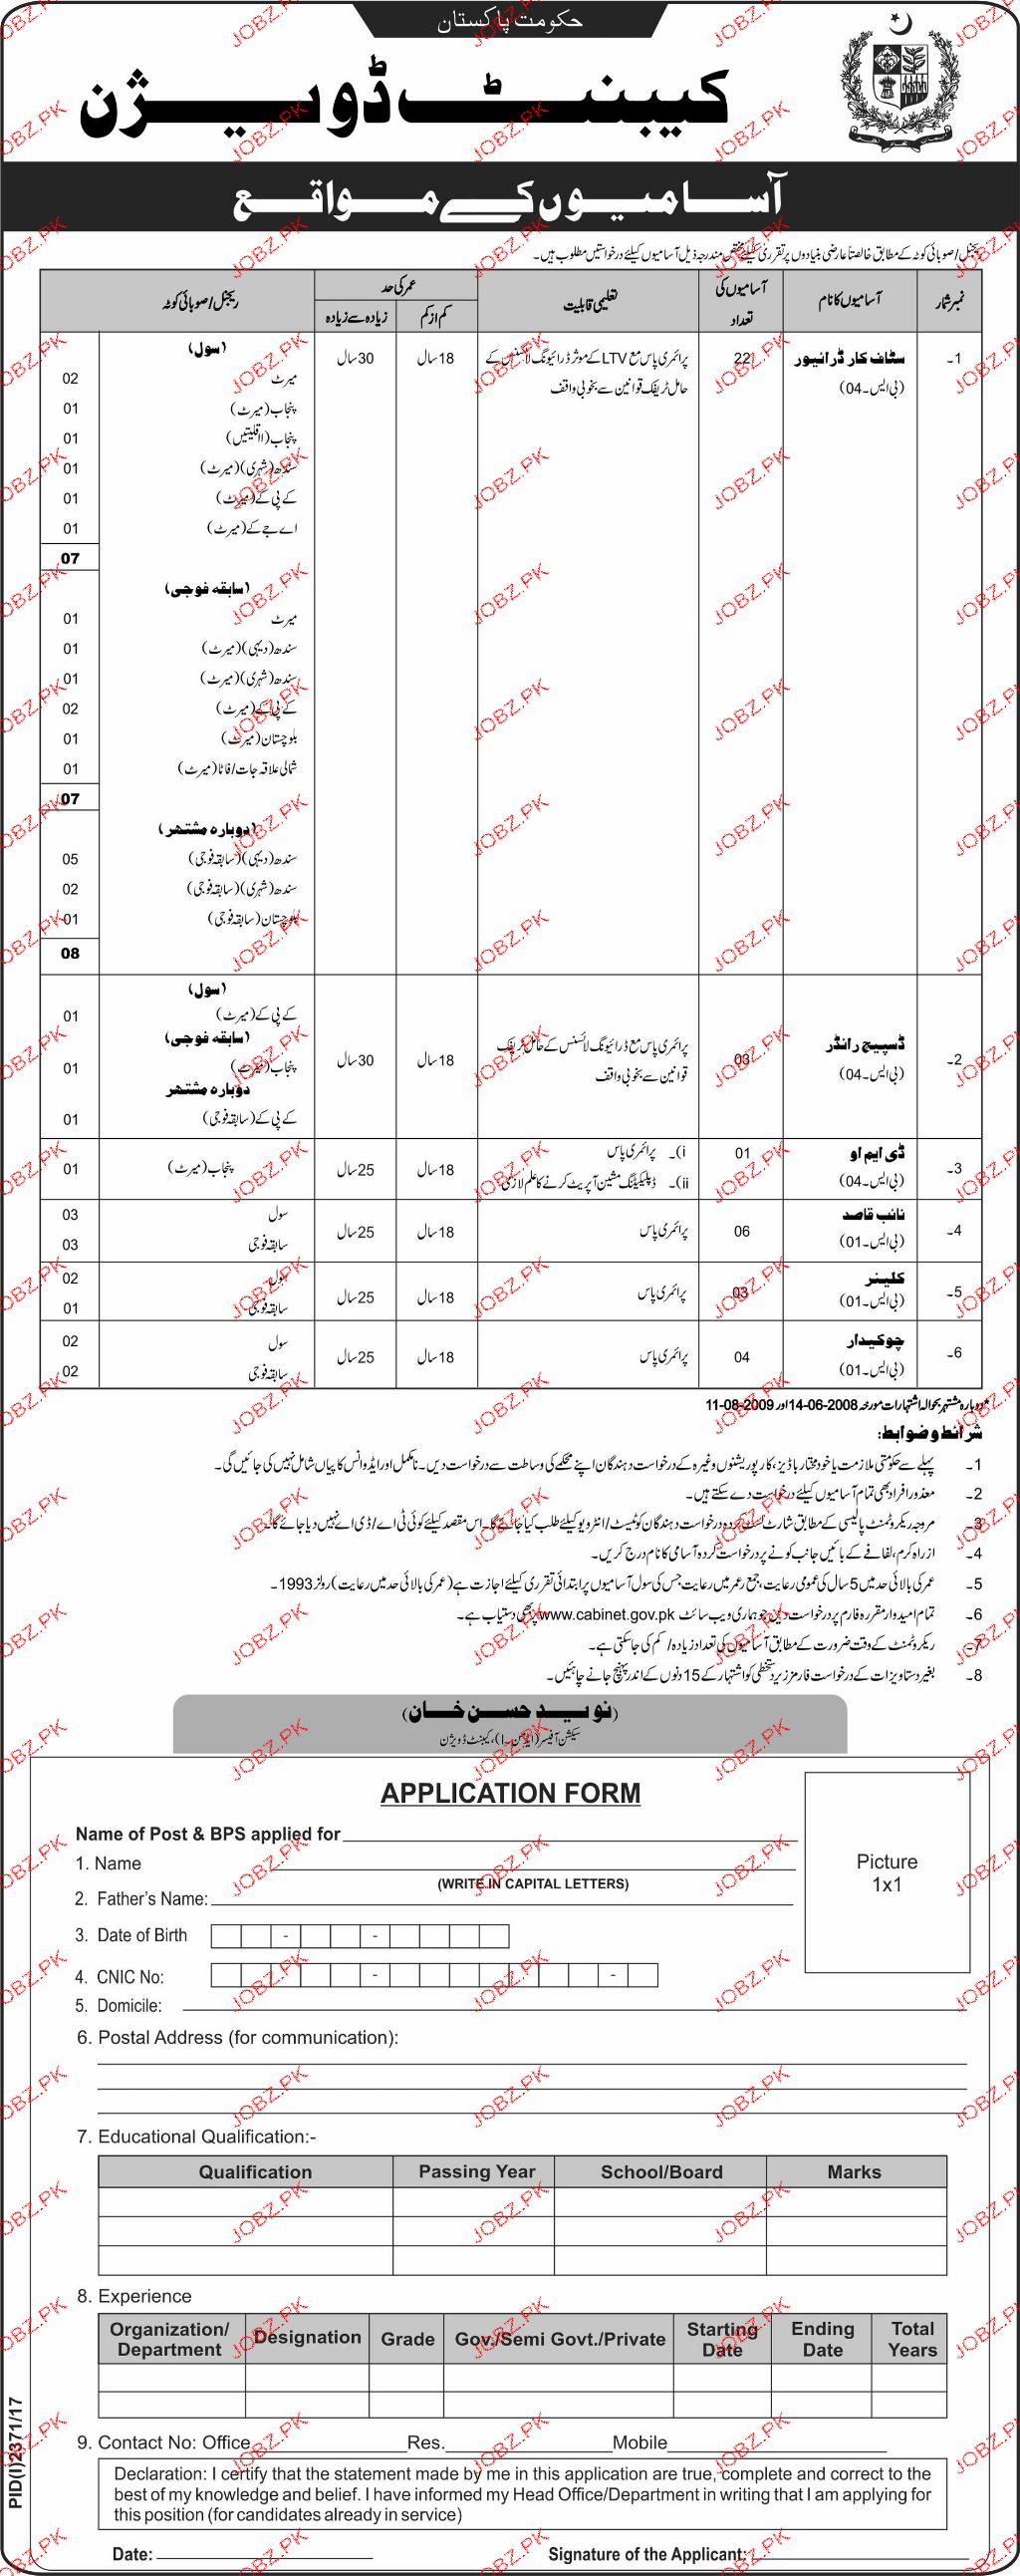 Cabinet Division Government of Pakistan Jobs